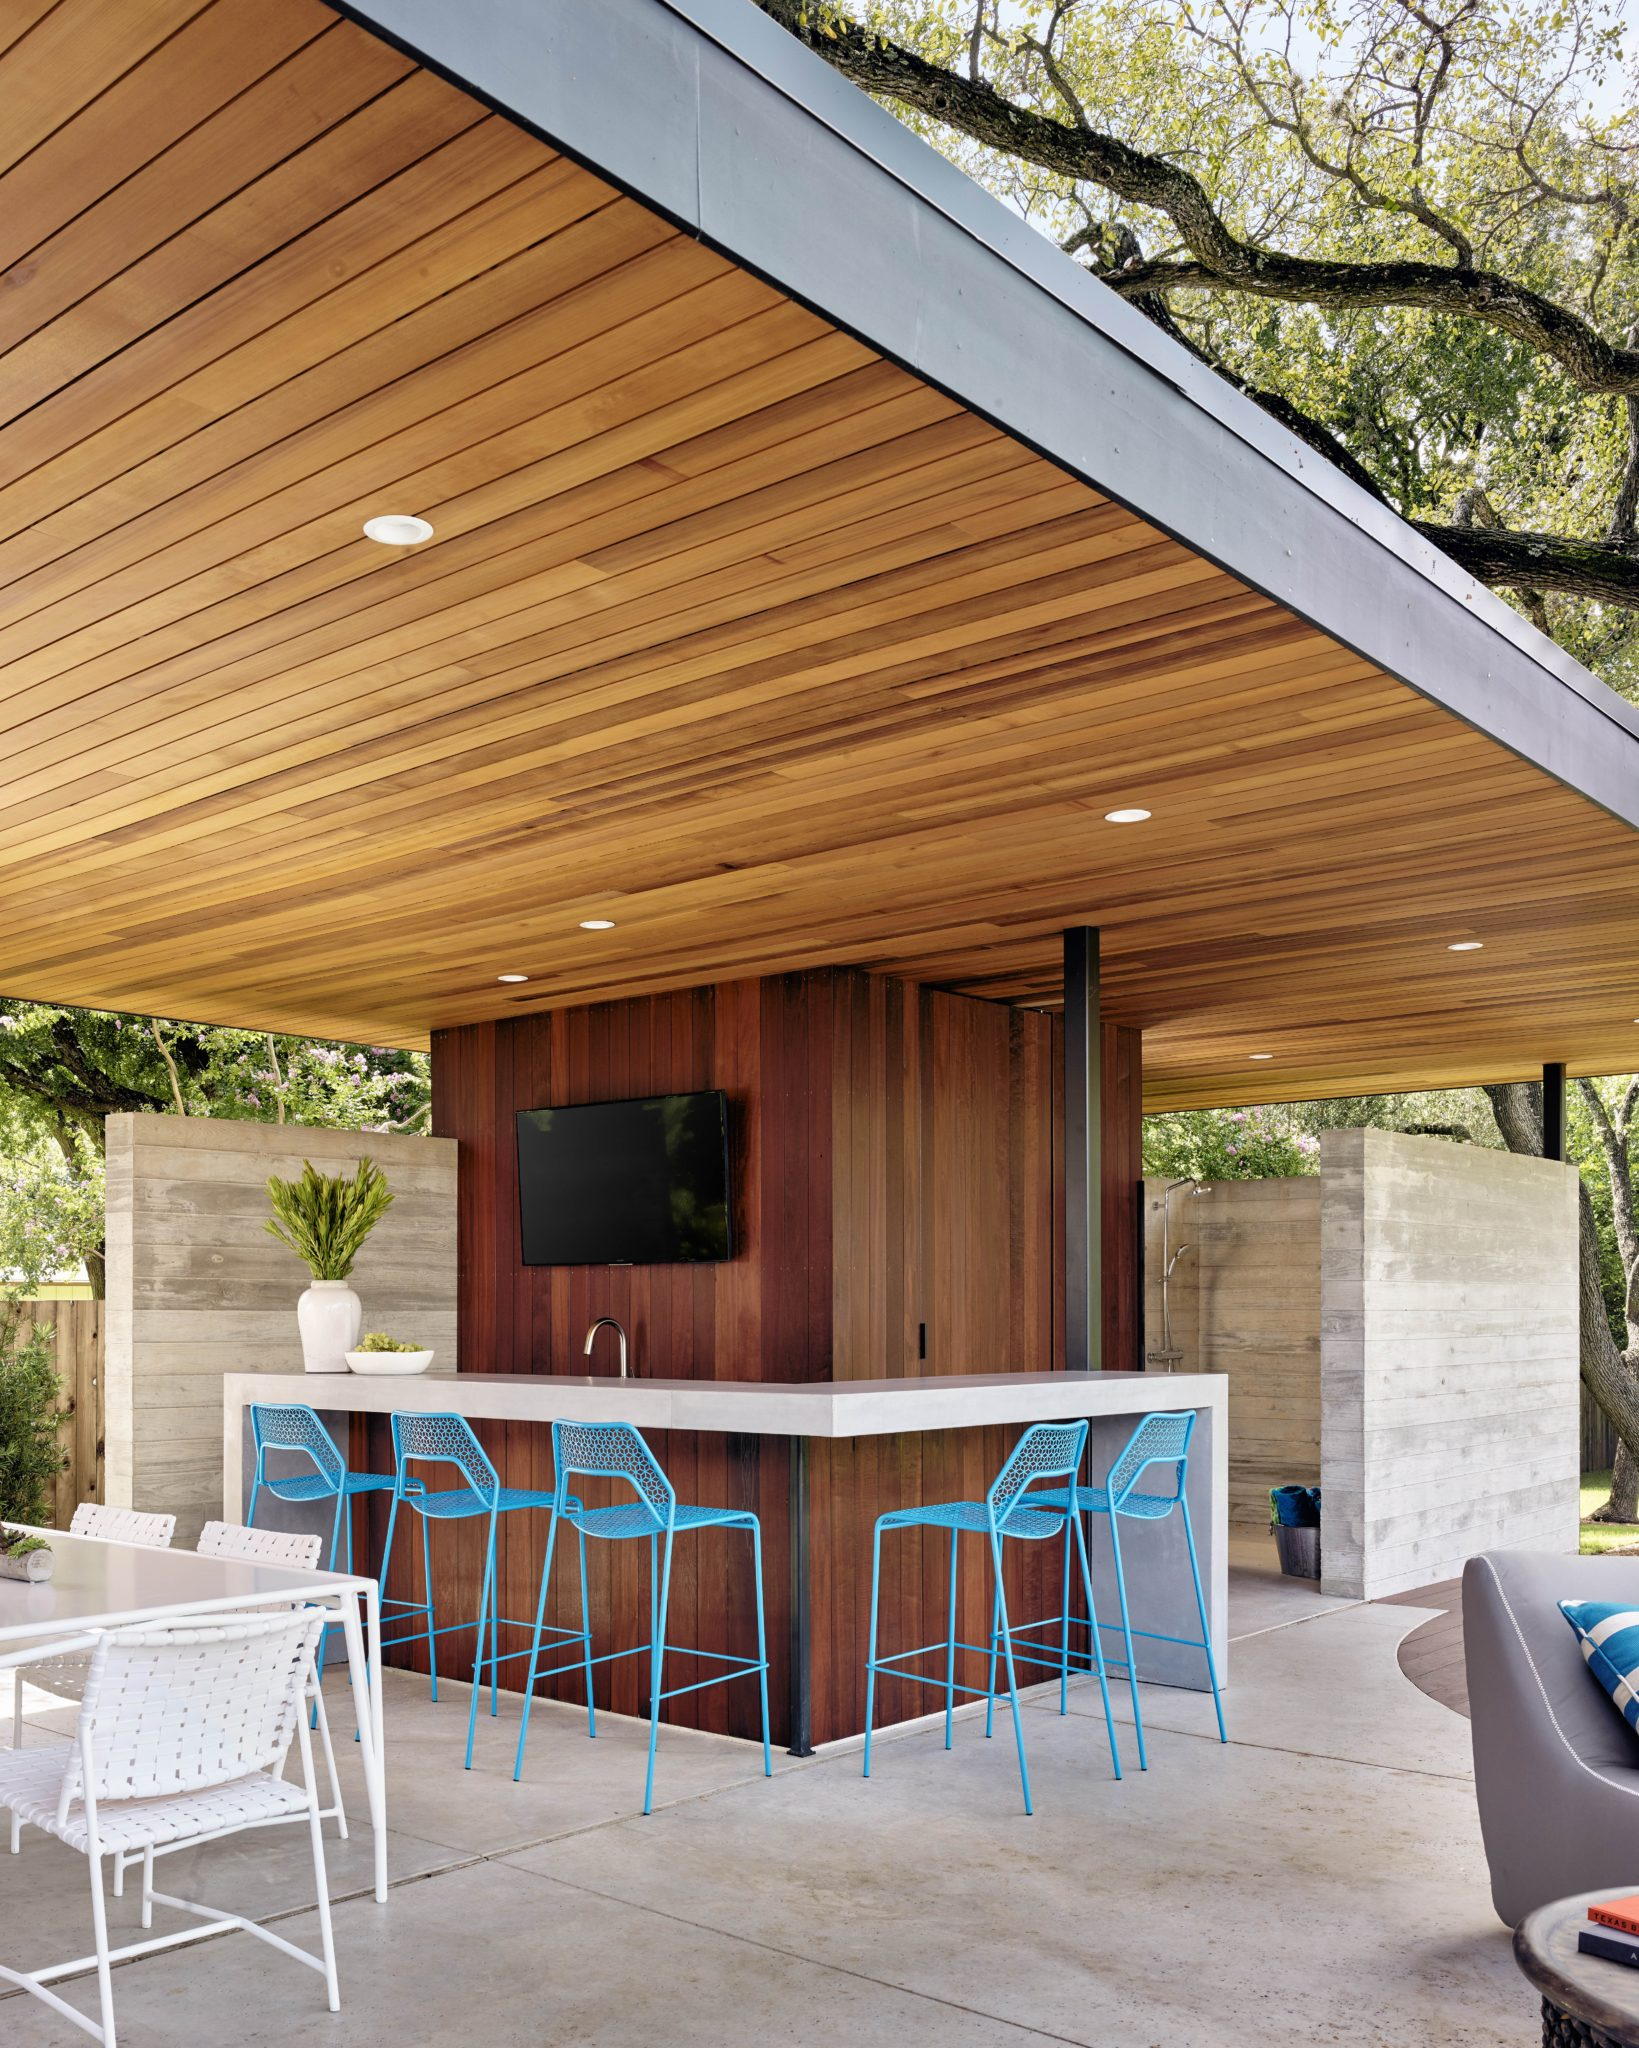 Modern outdoor bar and patio inAustin, Texas,by Greer Interior Design